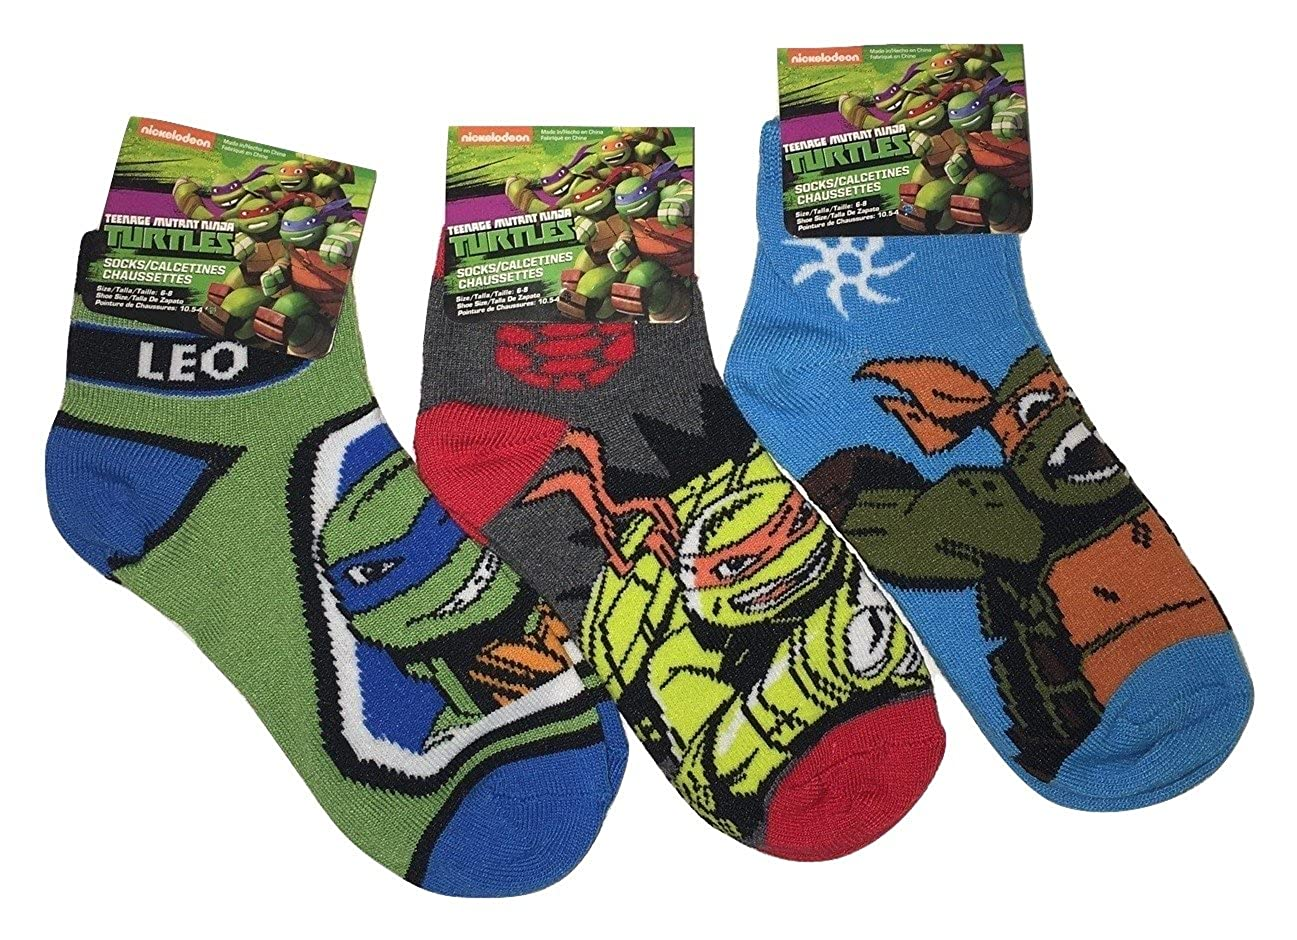 Amazon.com: Nickelodeon Teenage Mutant Ninja Turtles Youth Ankle Socks - 3 Pair, Size 6-8: Clothing